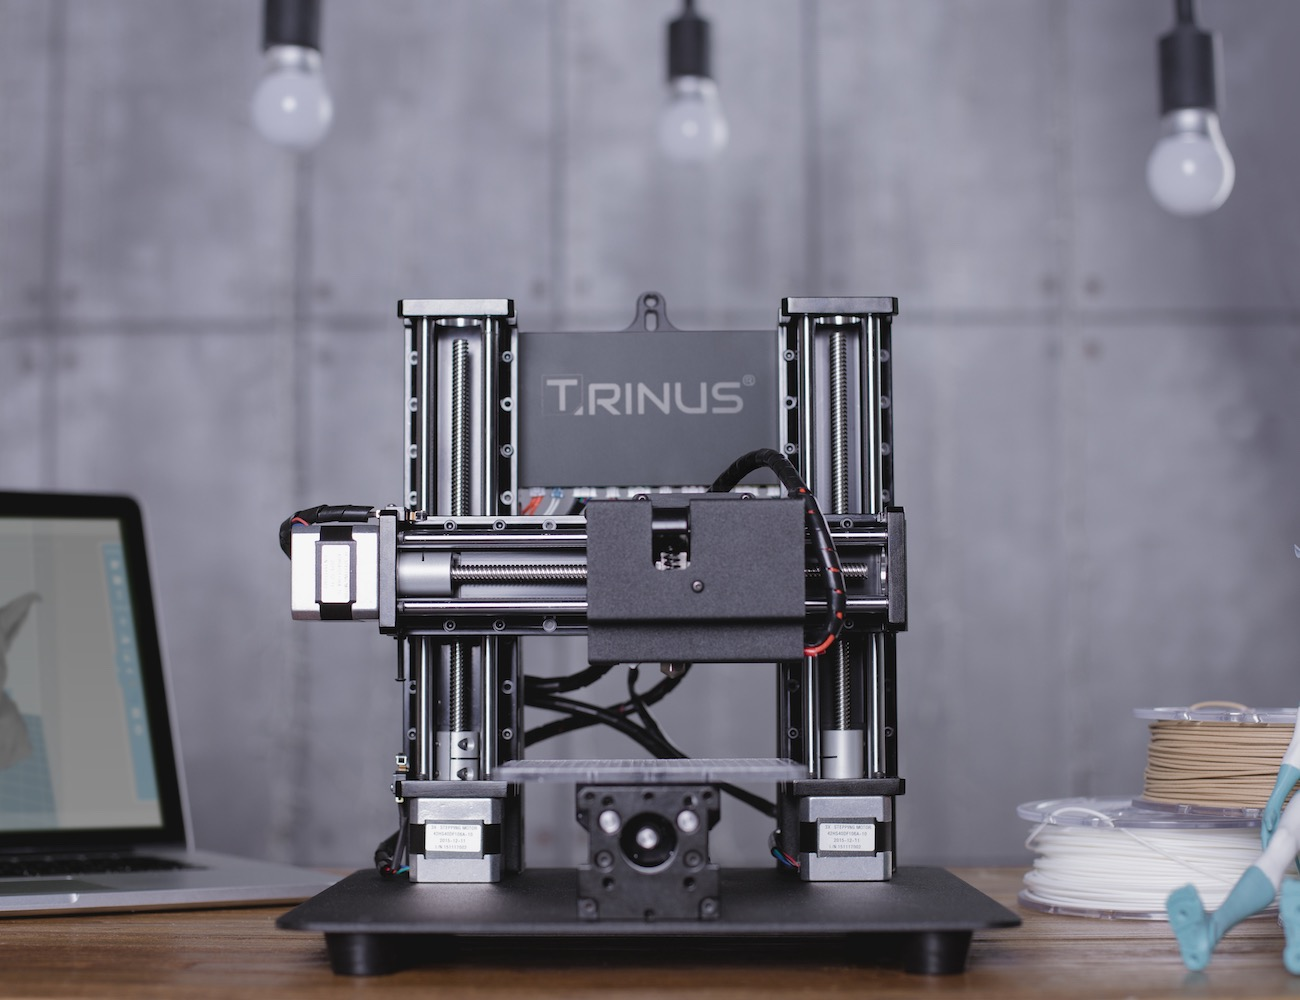 TRINUS+%26%238211%3B+The+Affordable+All-Metal+3D+Printer